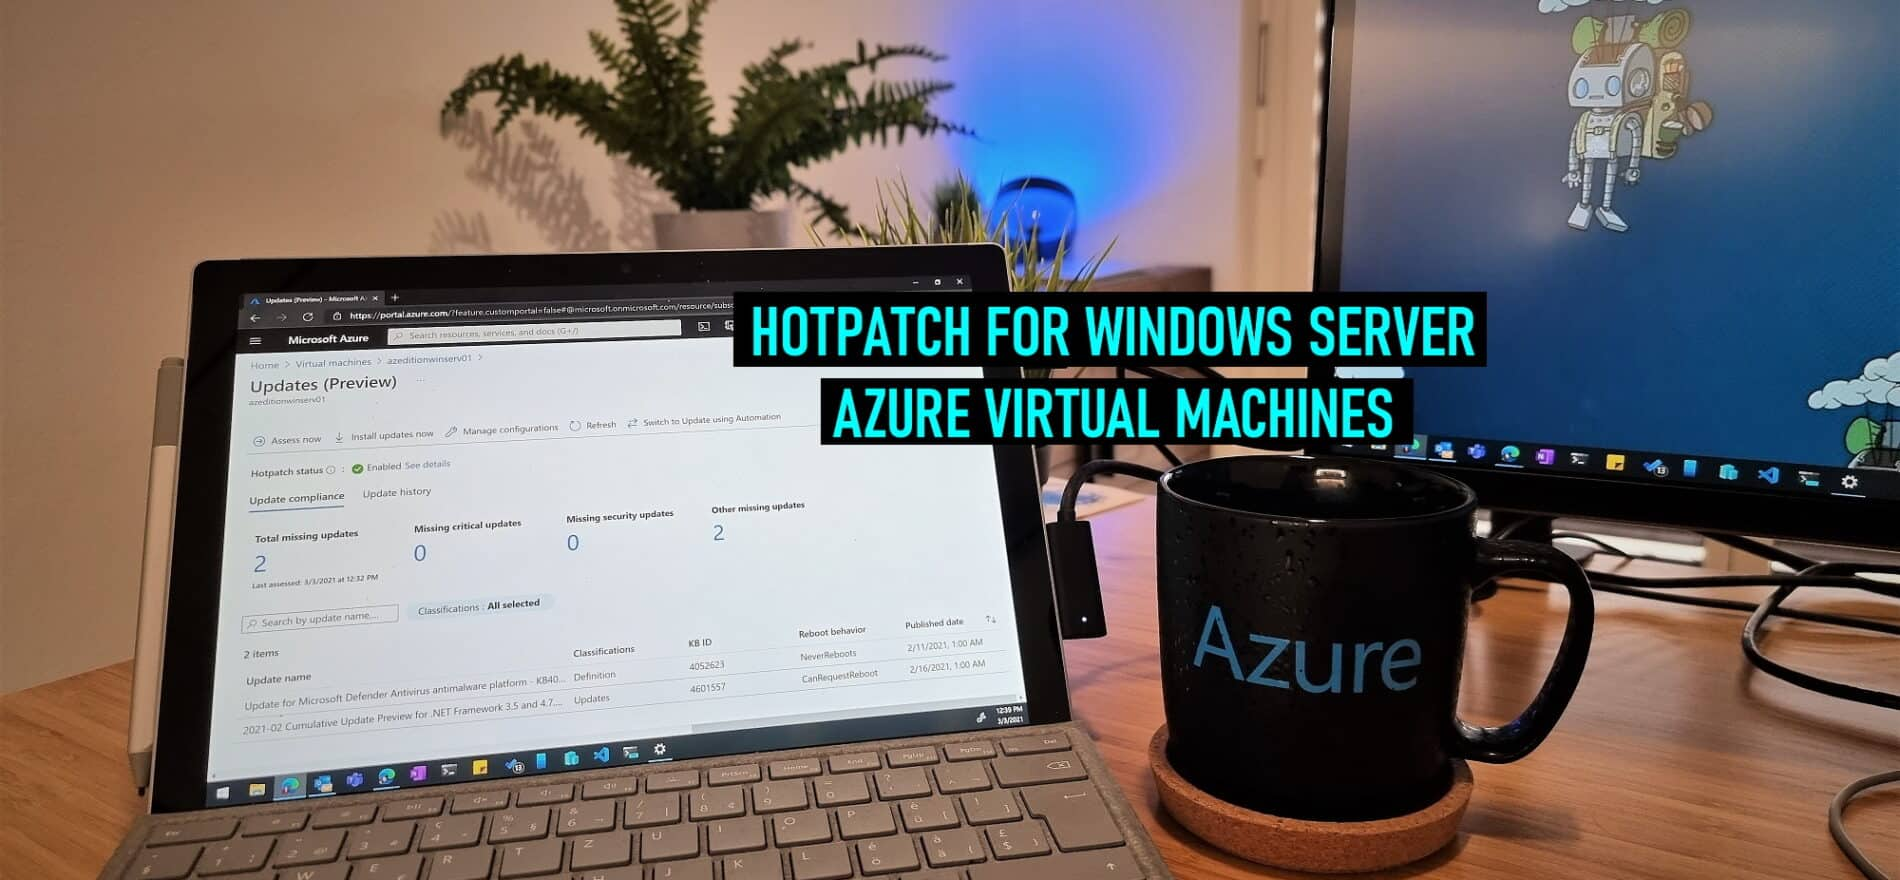 Hotpatch for Windows Server Azure VMs